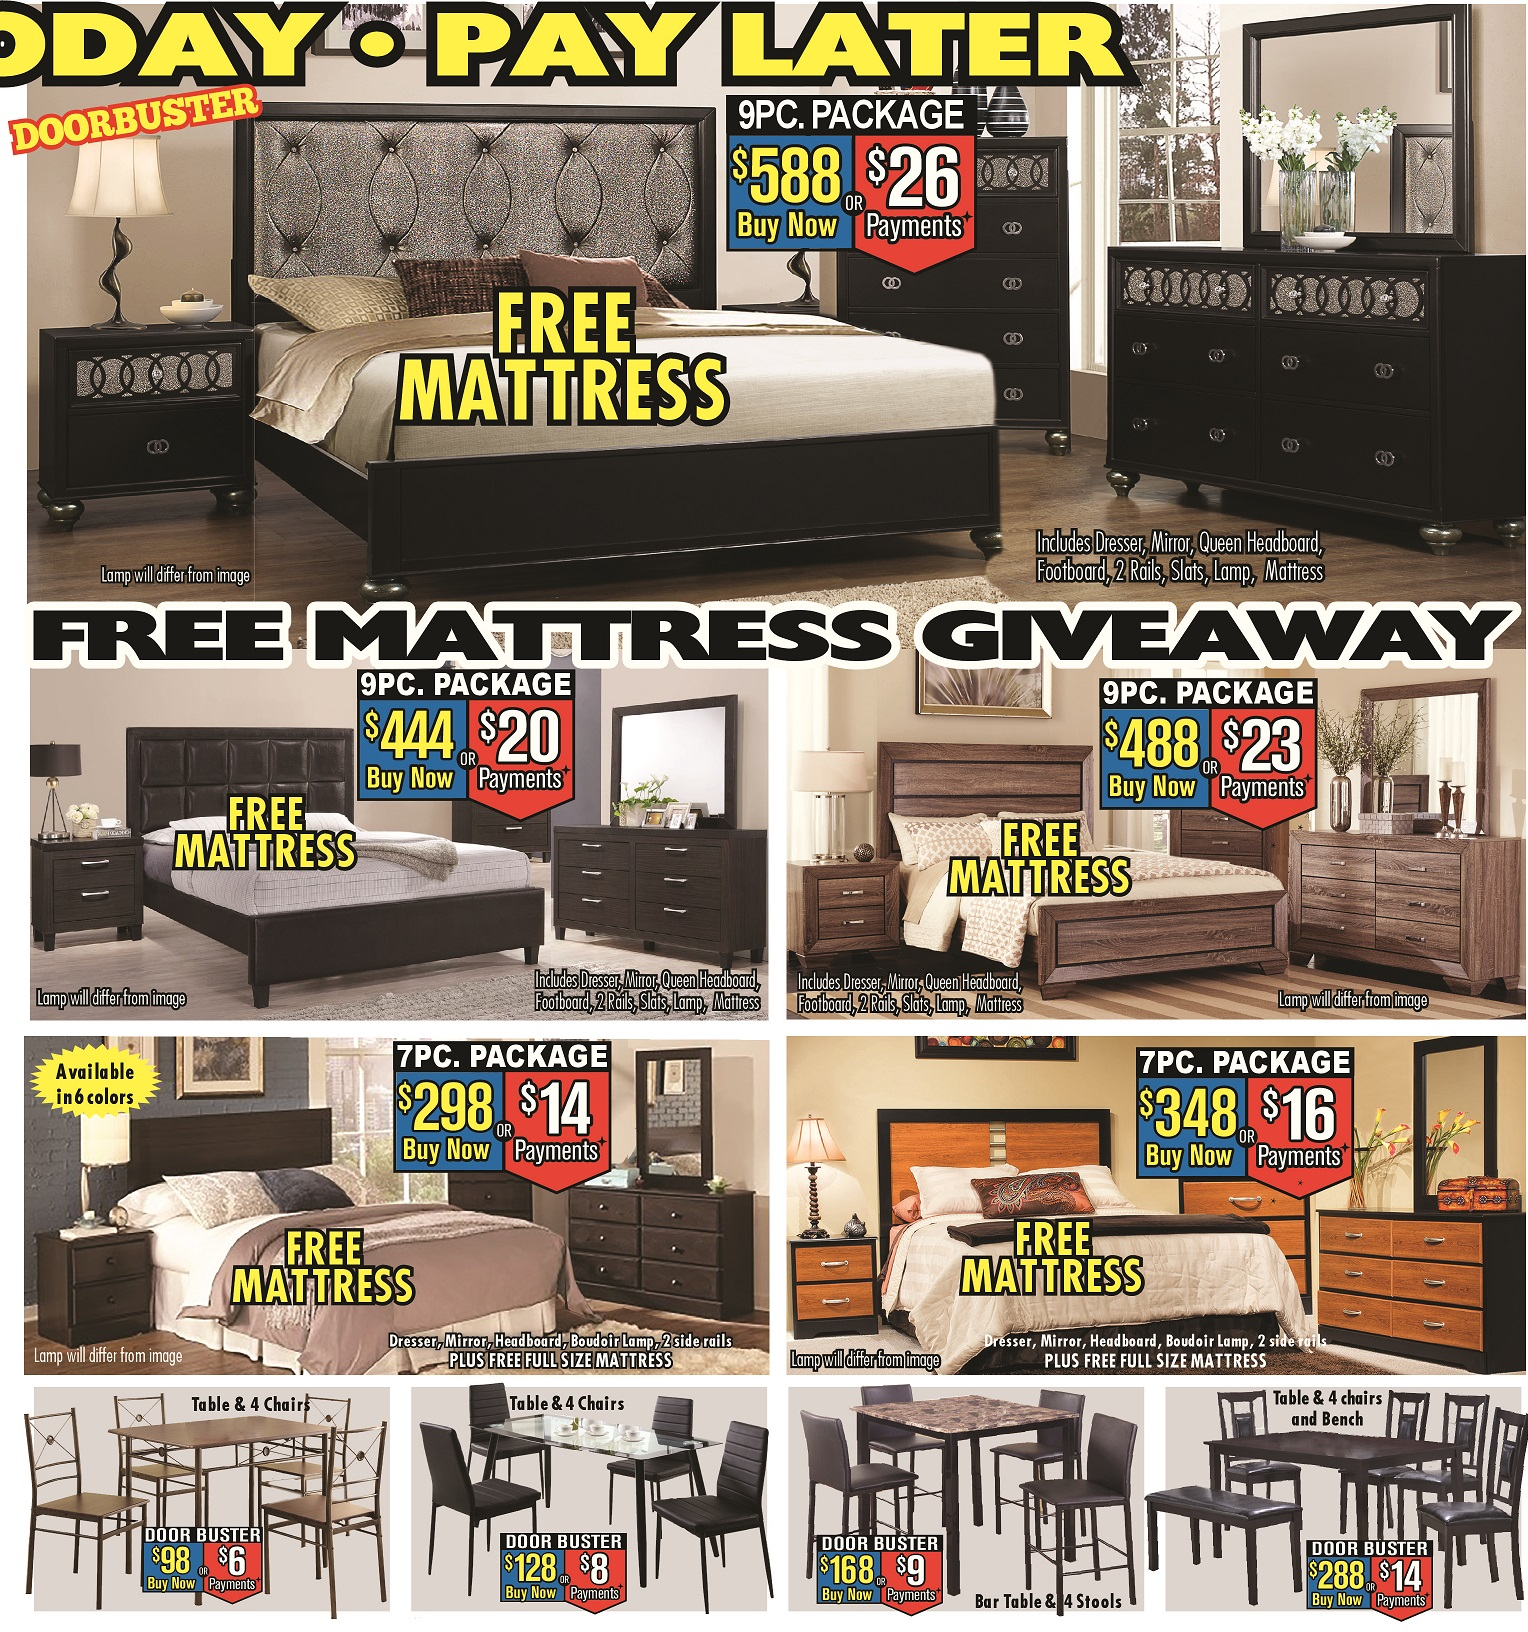 Price Busters Discount Furniture image 3